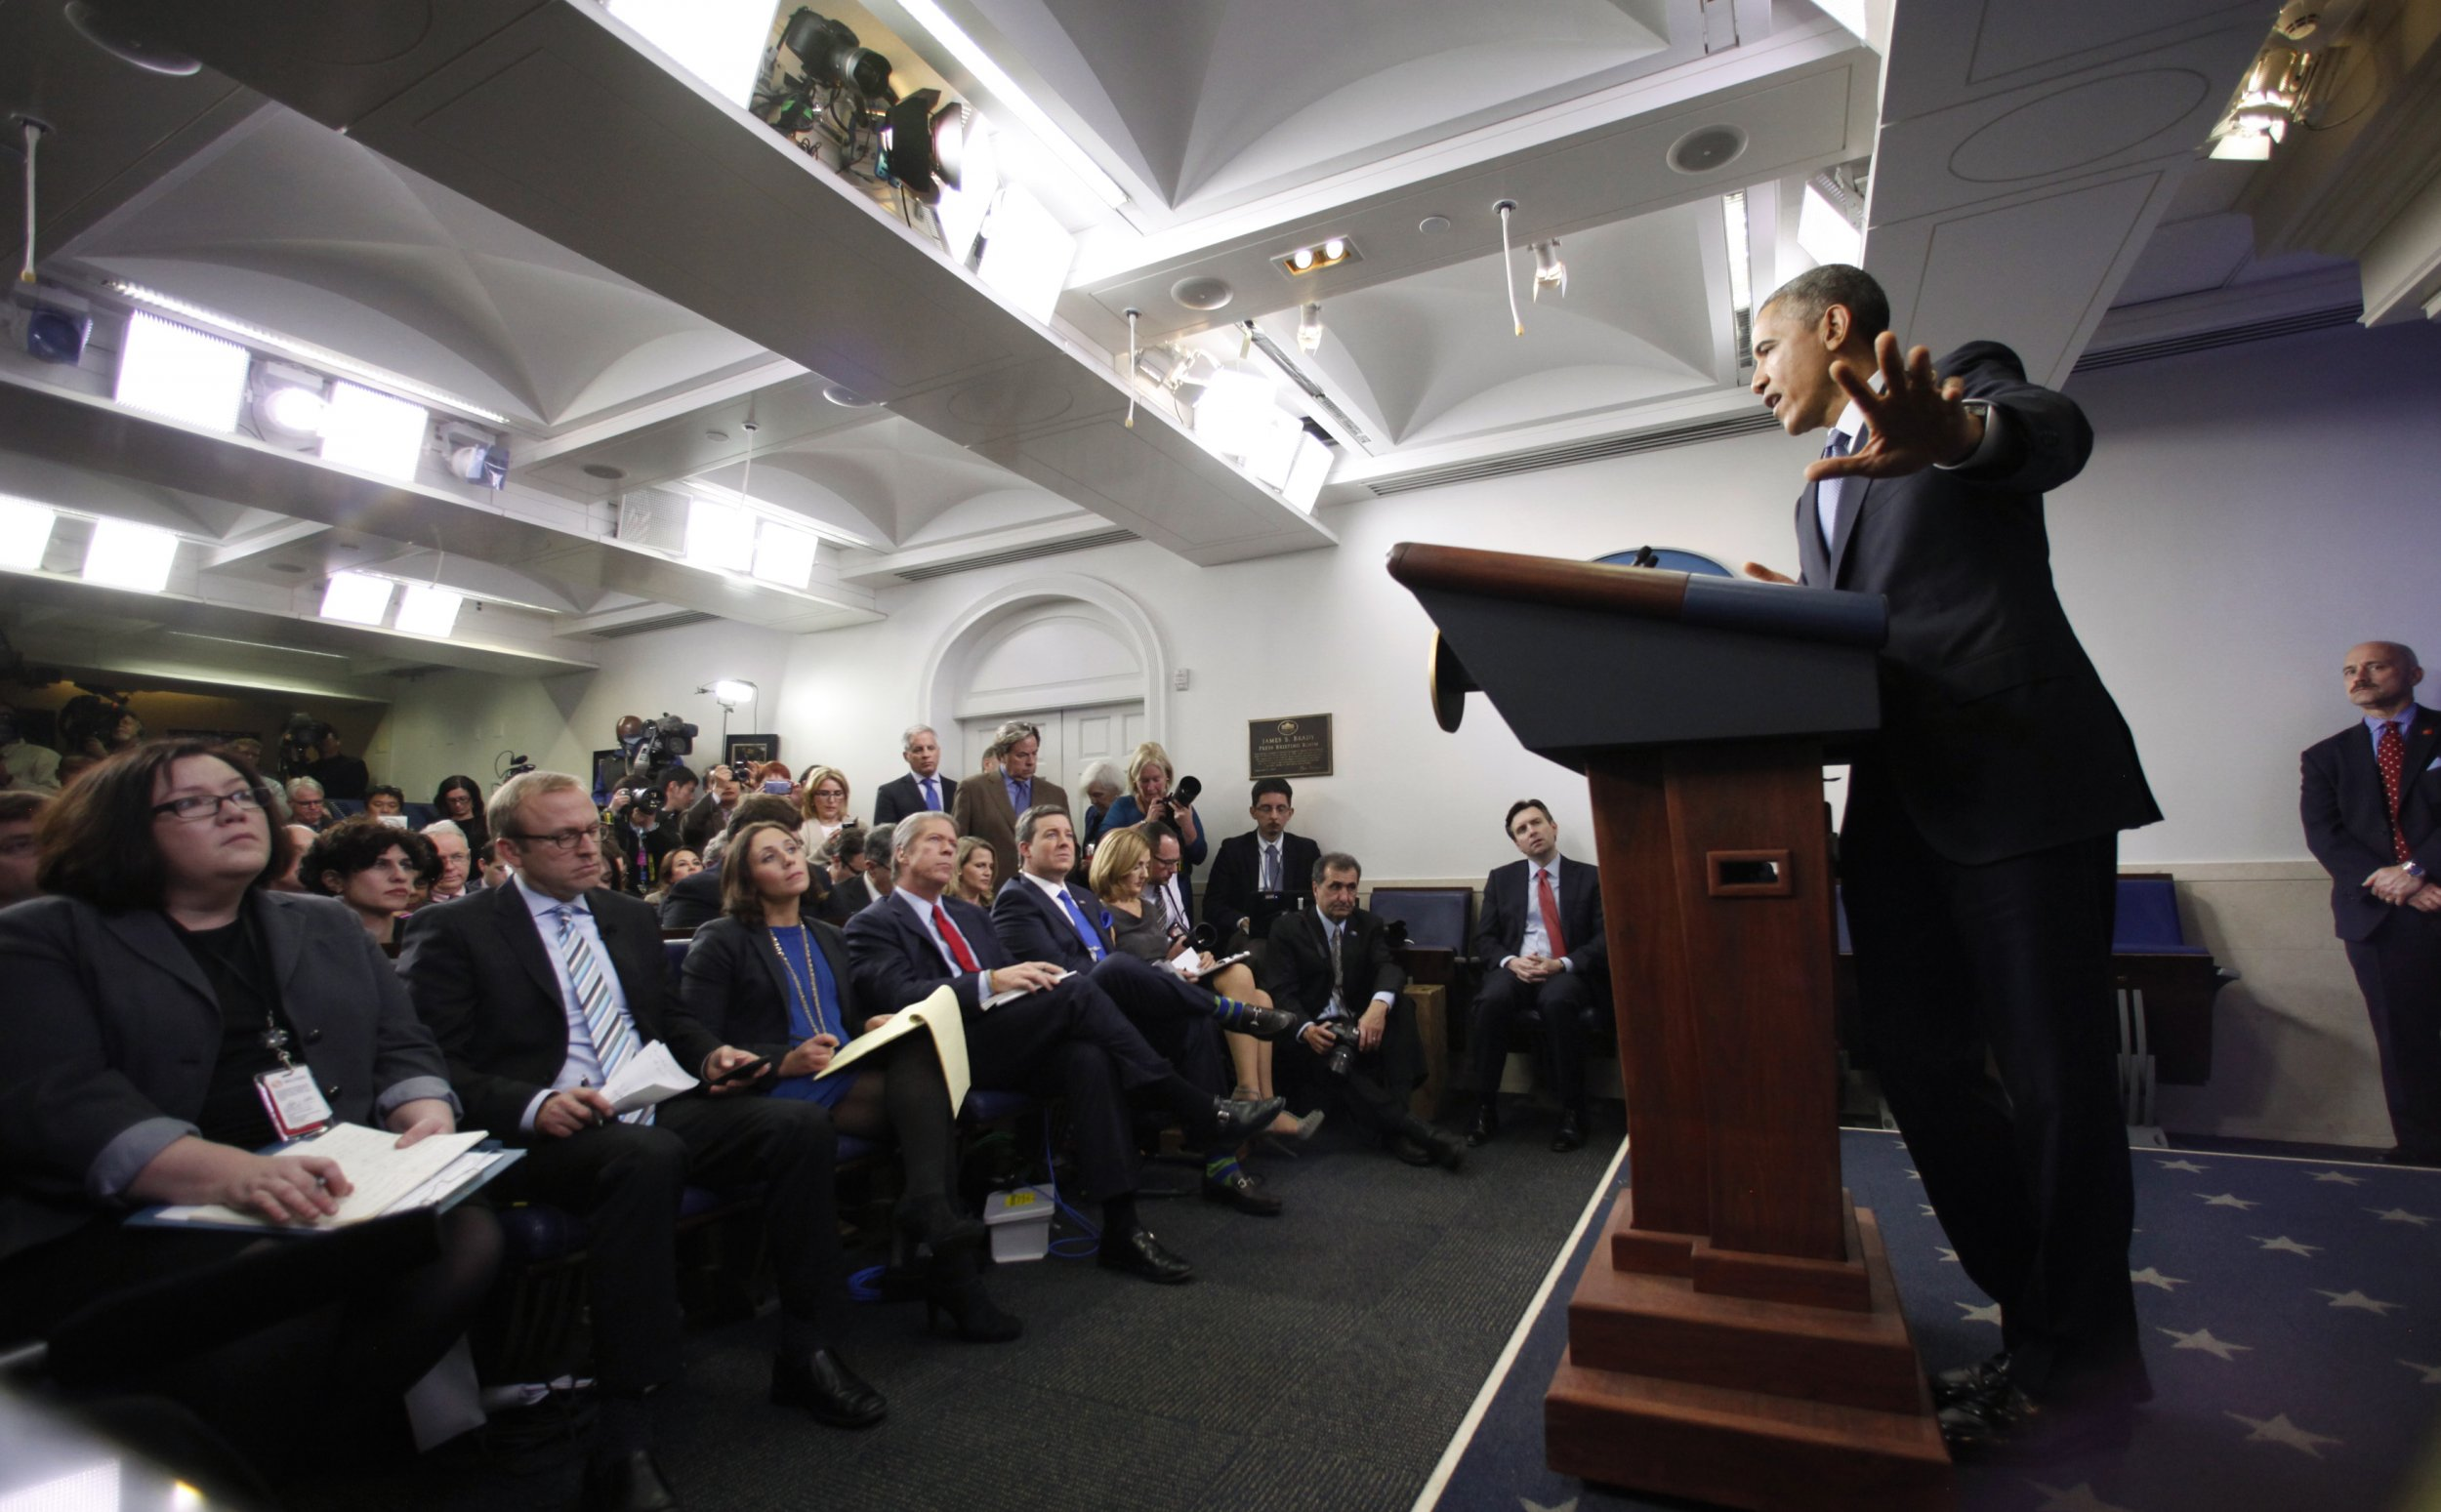 President Obama's Year-End News Conference